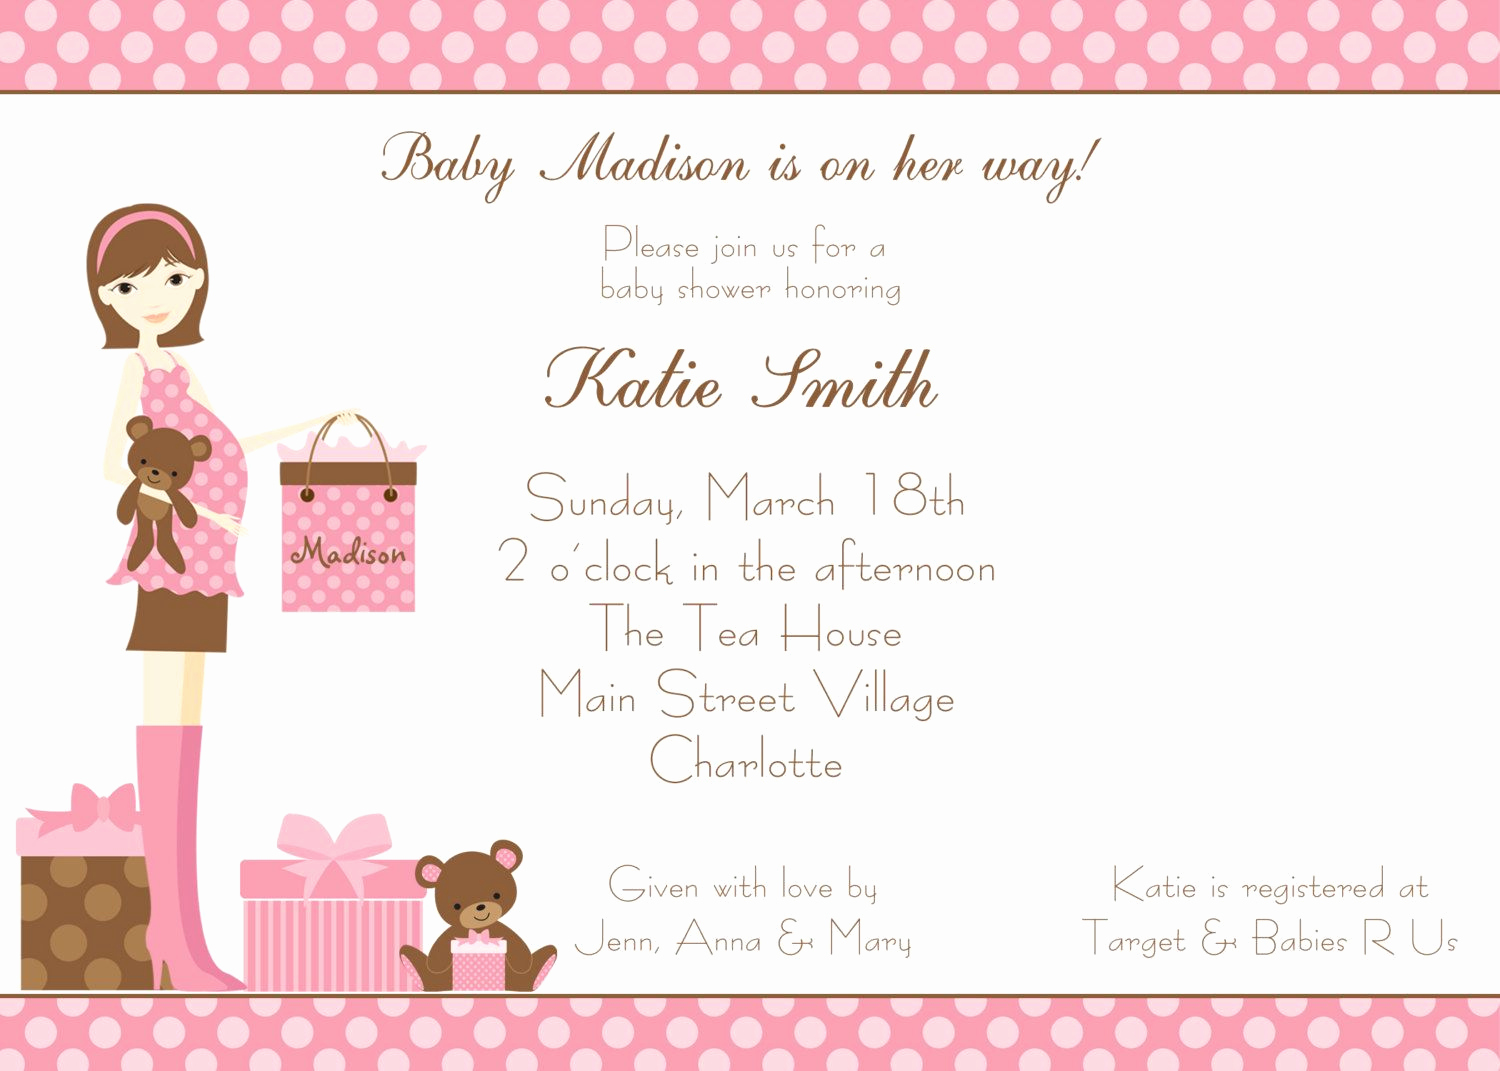 Baby Shower Invitation Example Awesome Baptism Invitations Free Baptism Invitation Template